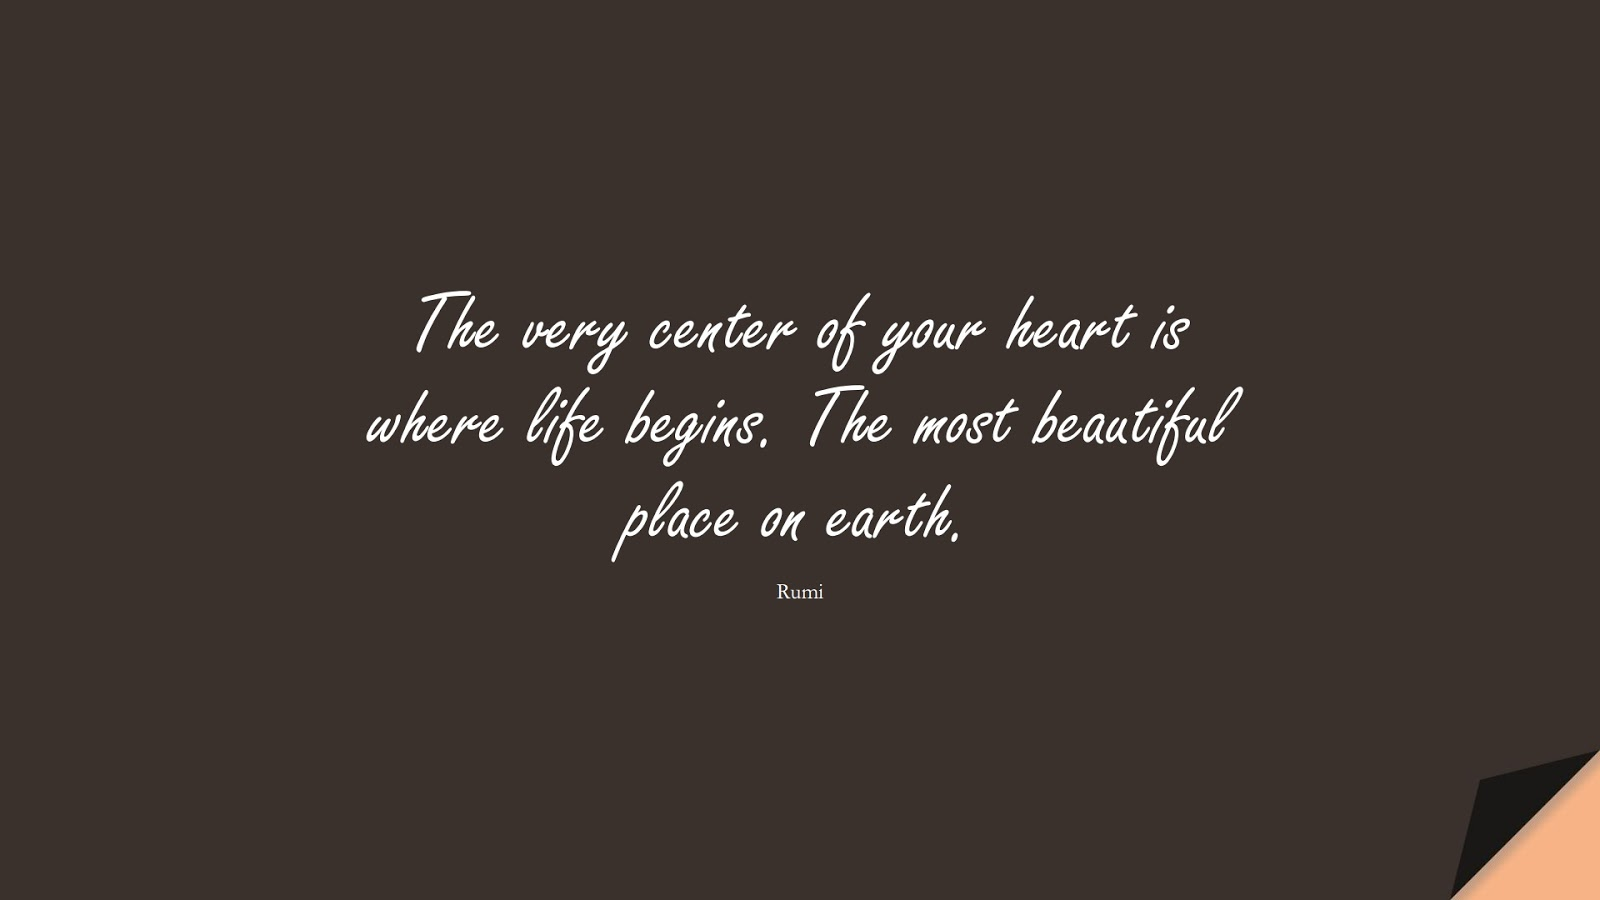 The very center of your heart is where life begins. The most beautiful place on earth. (Rumi);  #RumiQuotes